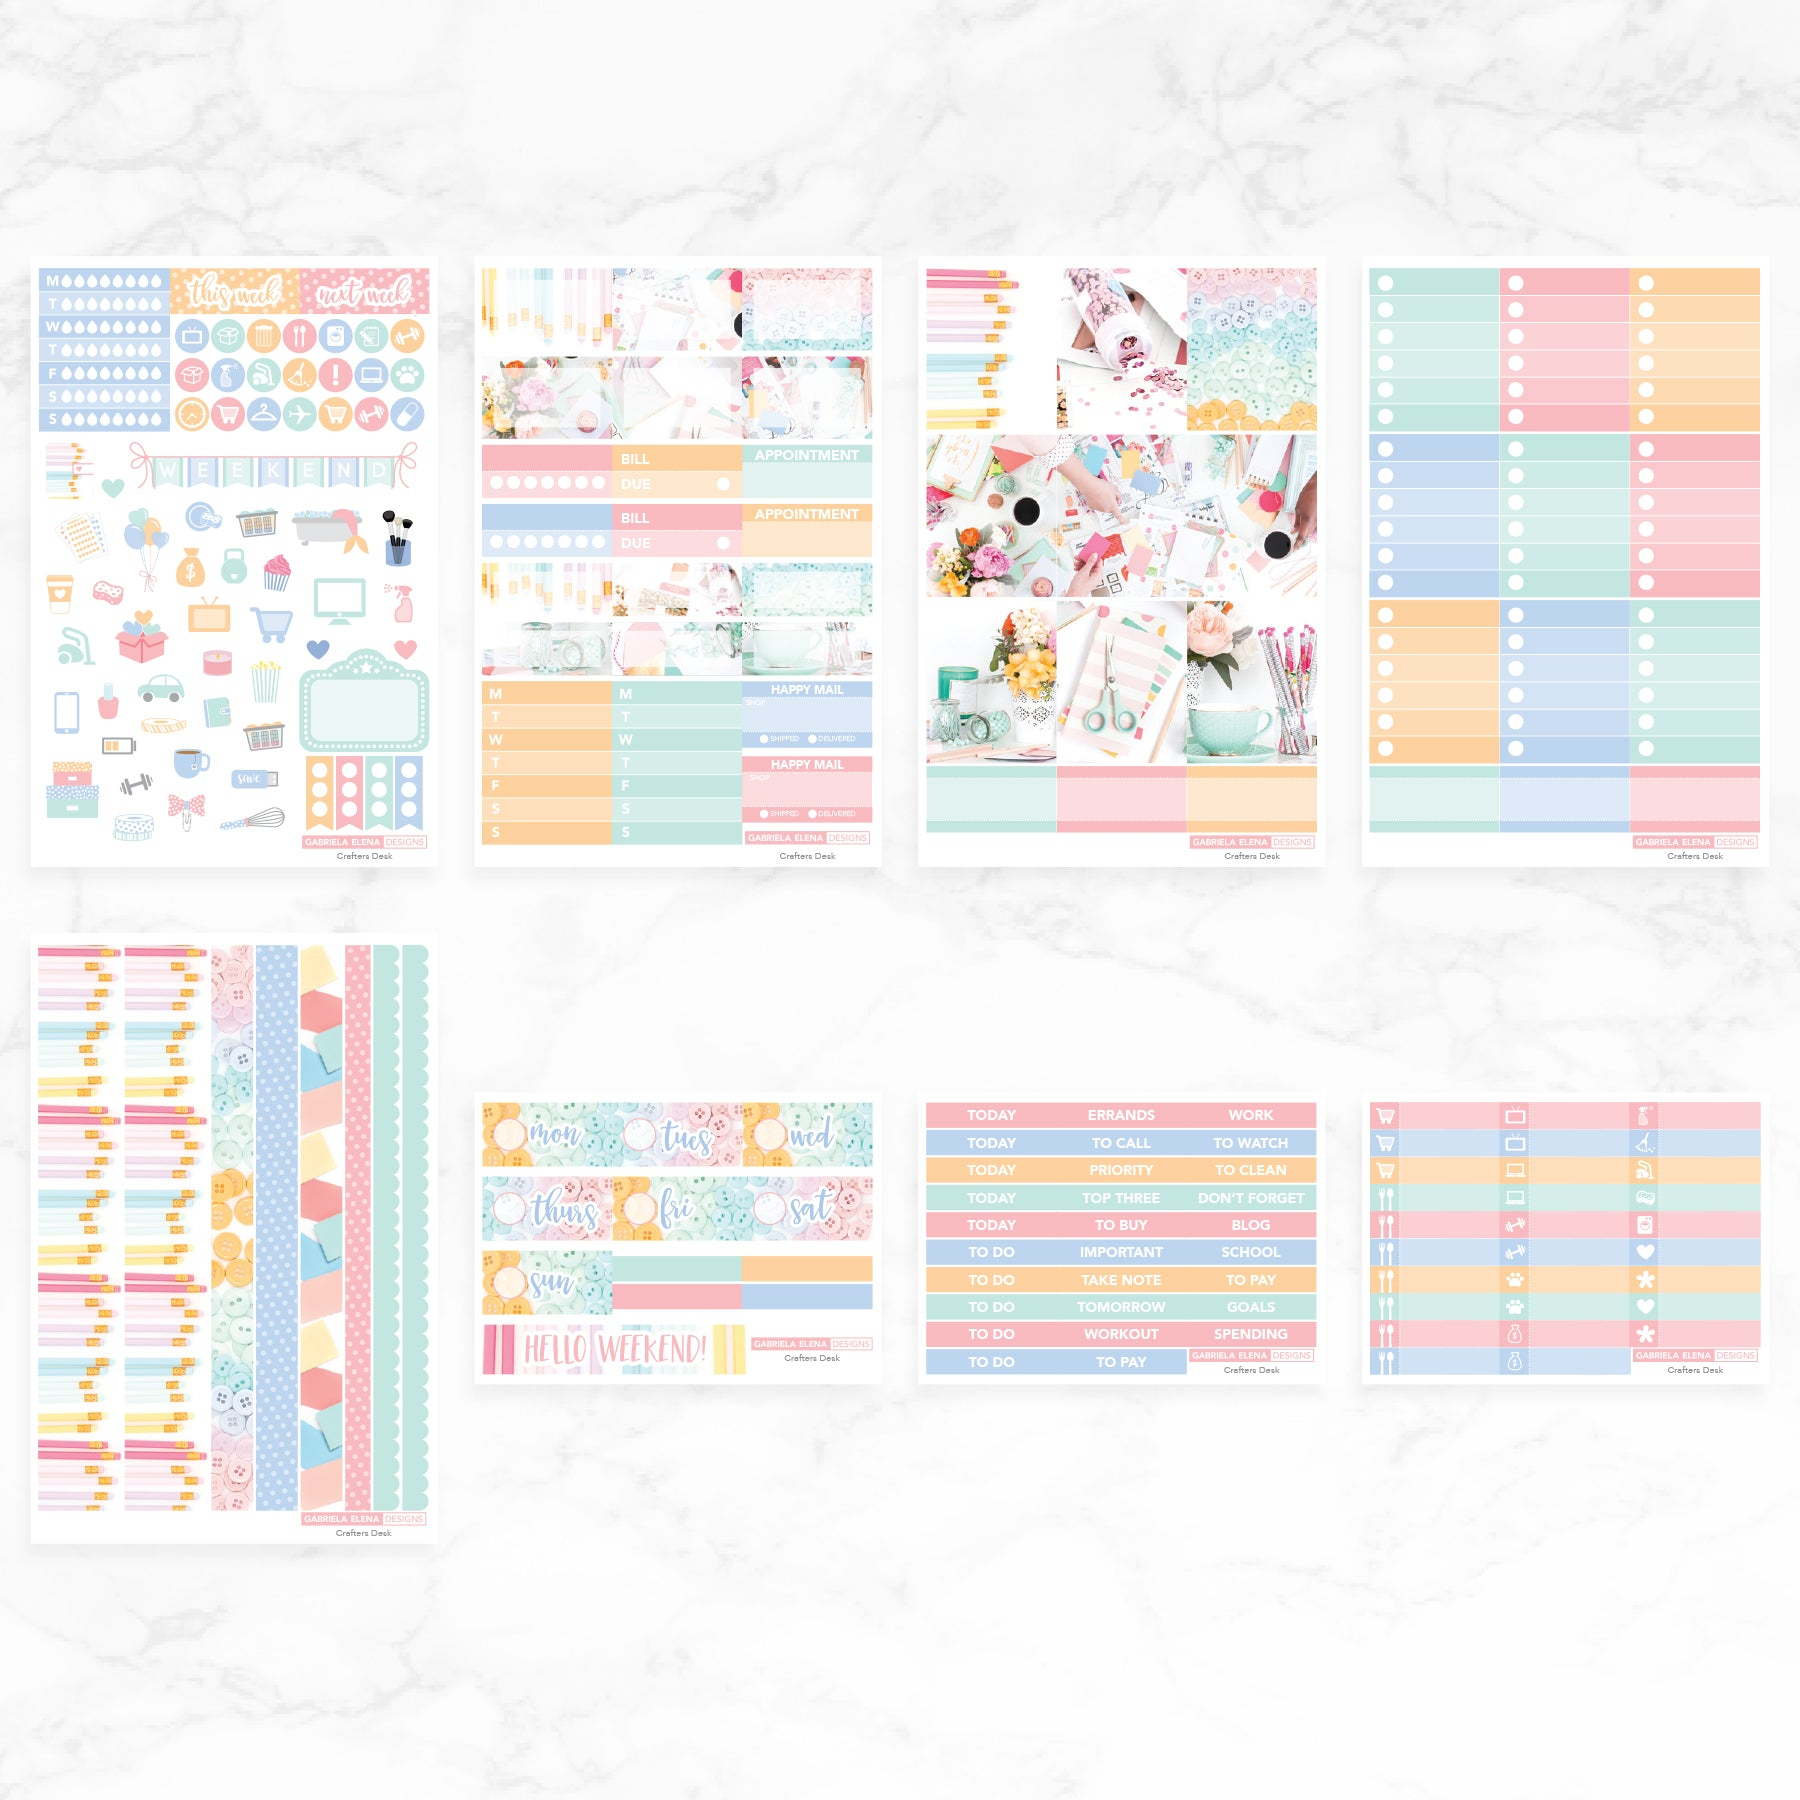 Crafting Desk / Photo Series // Deluxe EC VERTICAL // Sticker Kit // Full Weekly Kit / No white space